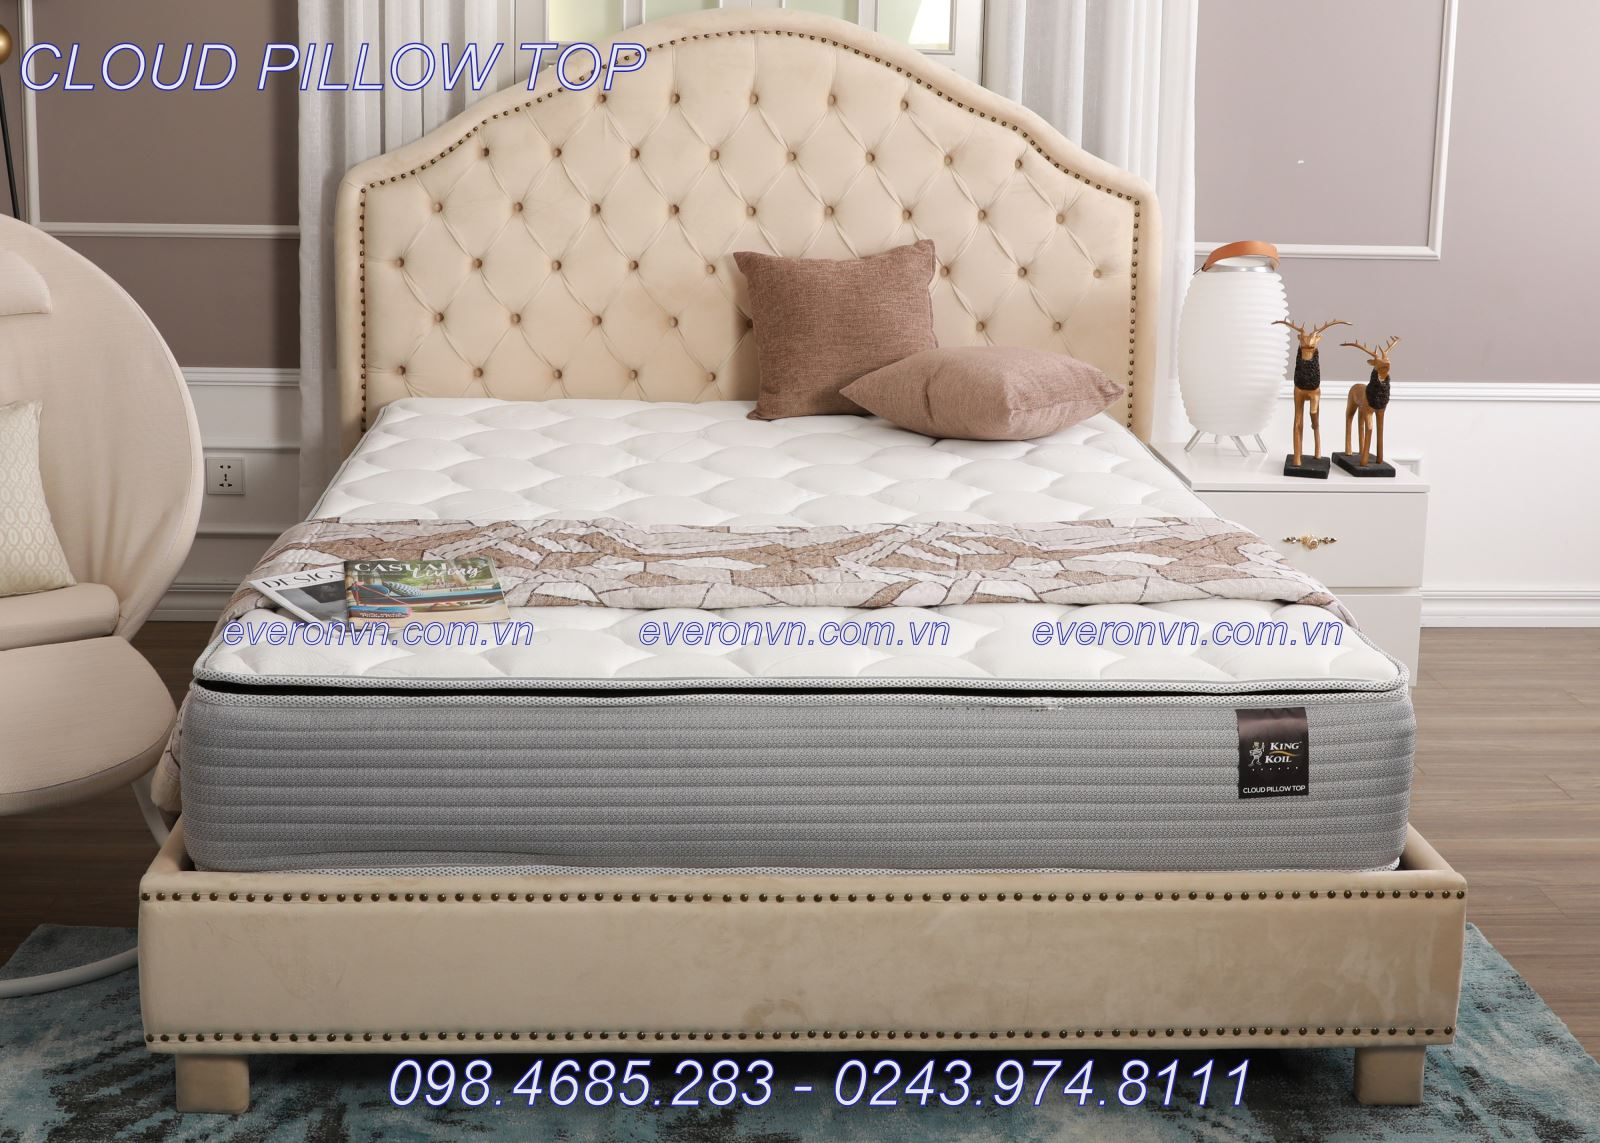 ĐỆM LÒ XO EVERON KINGKOIL CLOUD PILLOW TOP